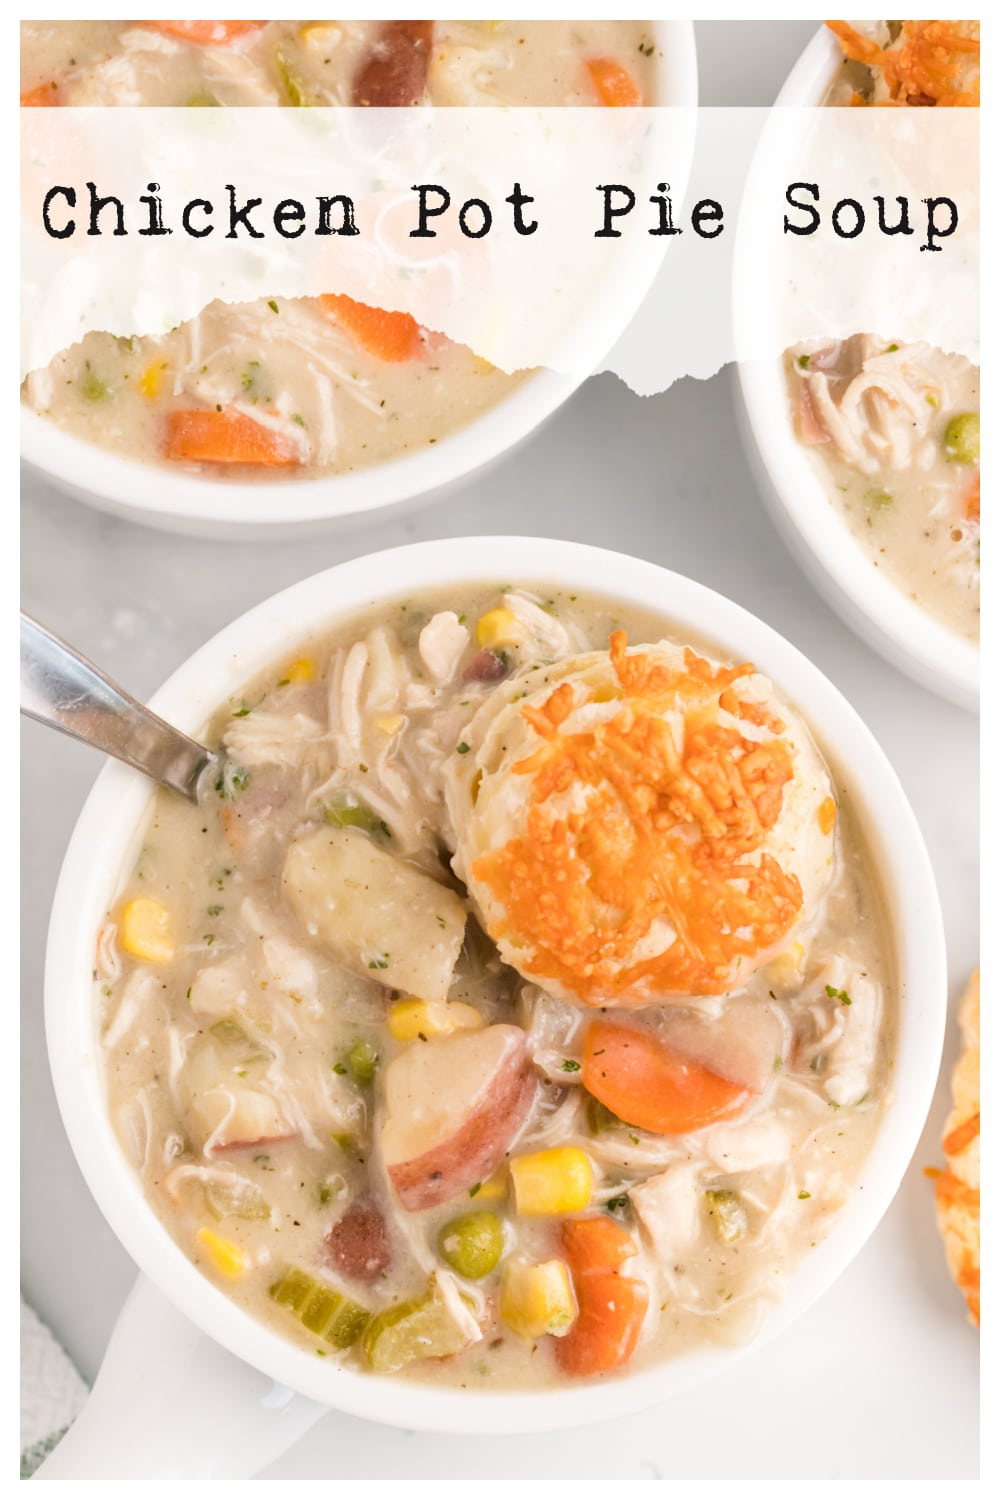 Chicken Pot Pie Soup - a thick and creamy base, with lots of body and richness. All the best flavors of chicken pot pie, but in soup form. via @cmpollak1